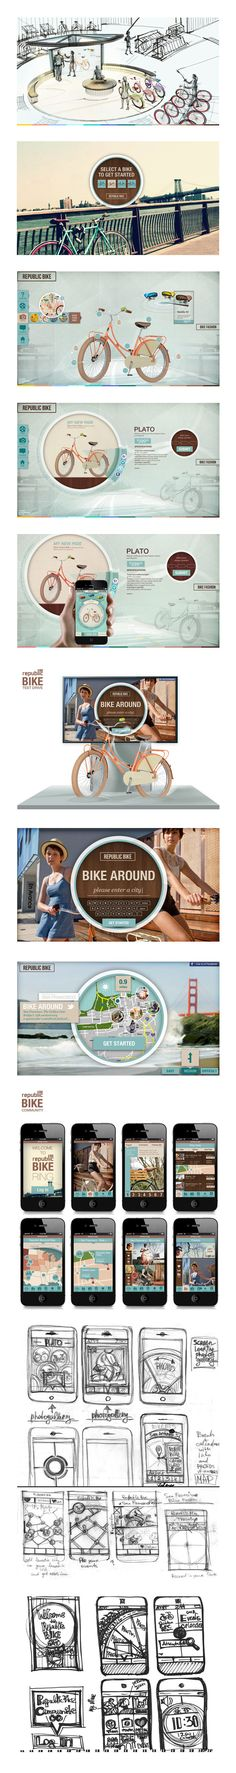 Republic Bike - Retail Store by Natalya Yampolsky, via Behance *** Buying in the future retail store is going to be a digital touch screen experience. It will offer a variety of interactive choices based on buyer's tastes and preferences. A customer is going to be able to build a bike using 3D interactive display with the real size bike...